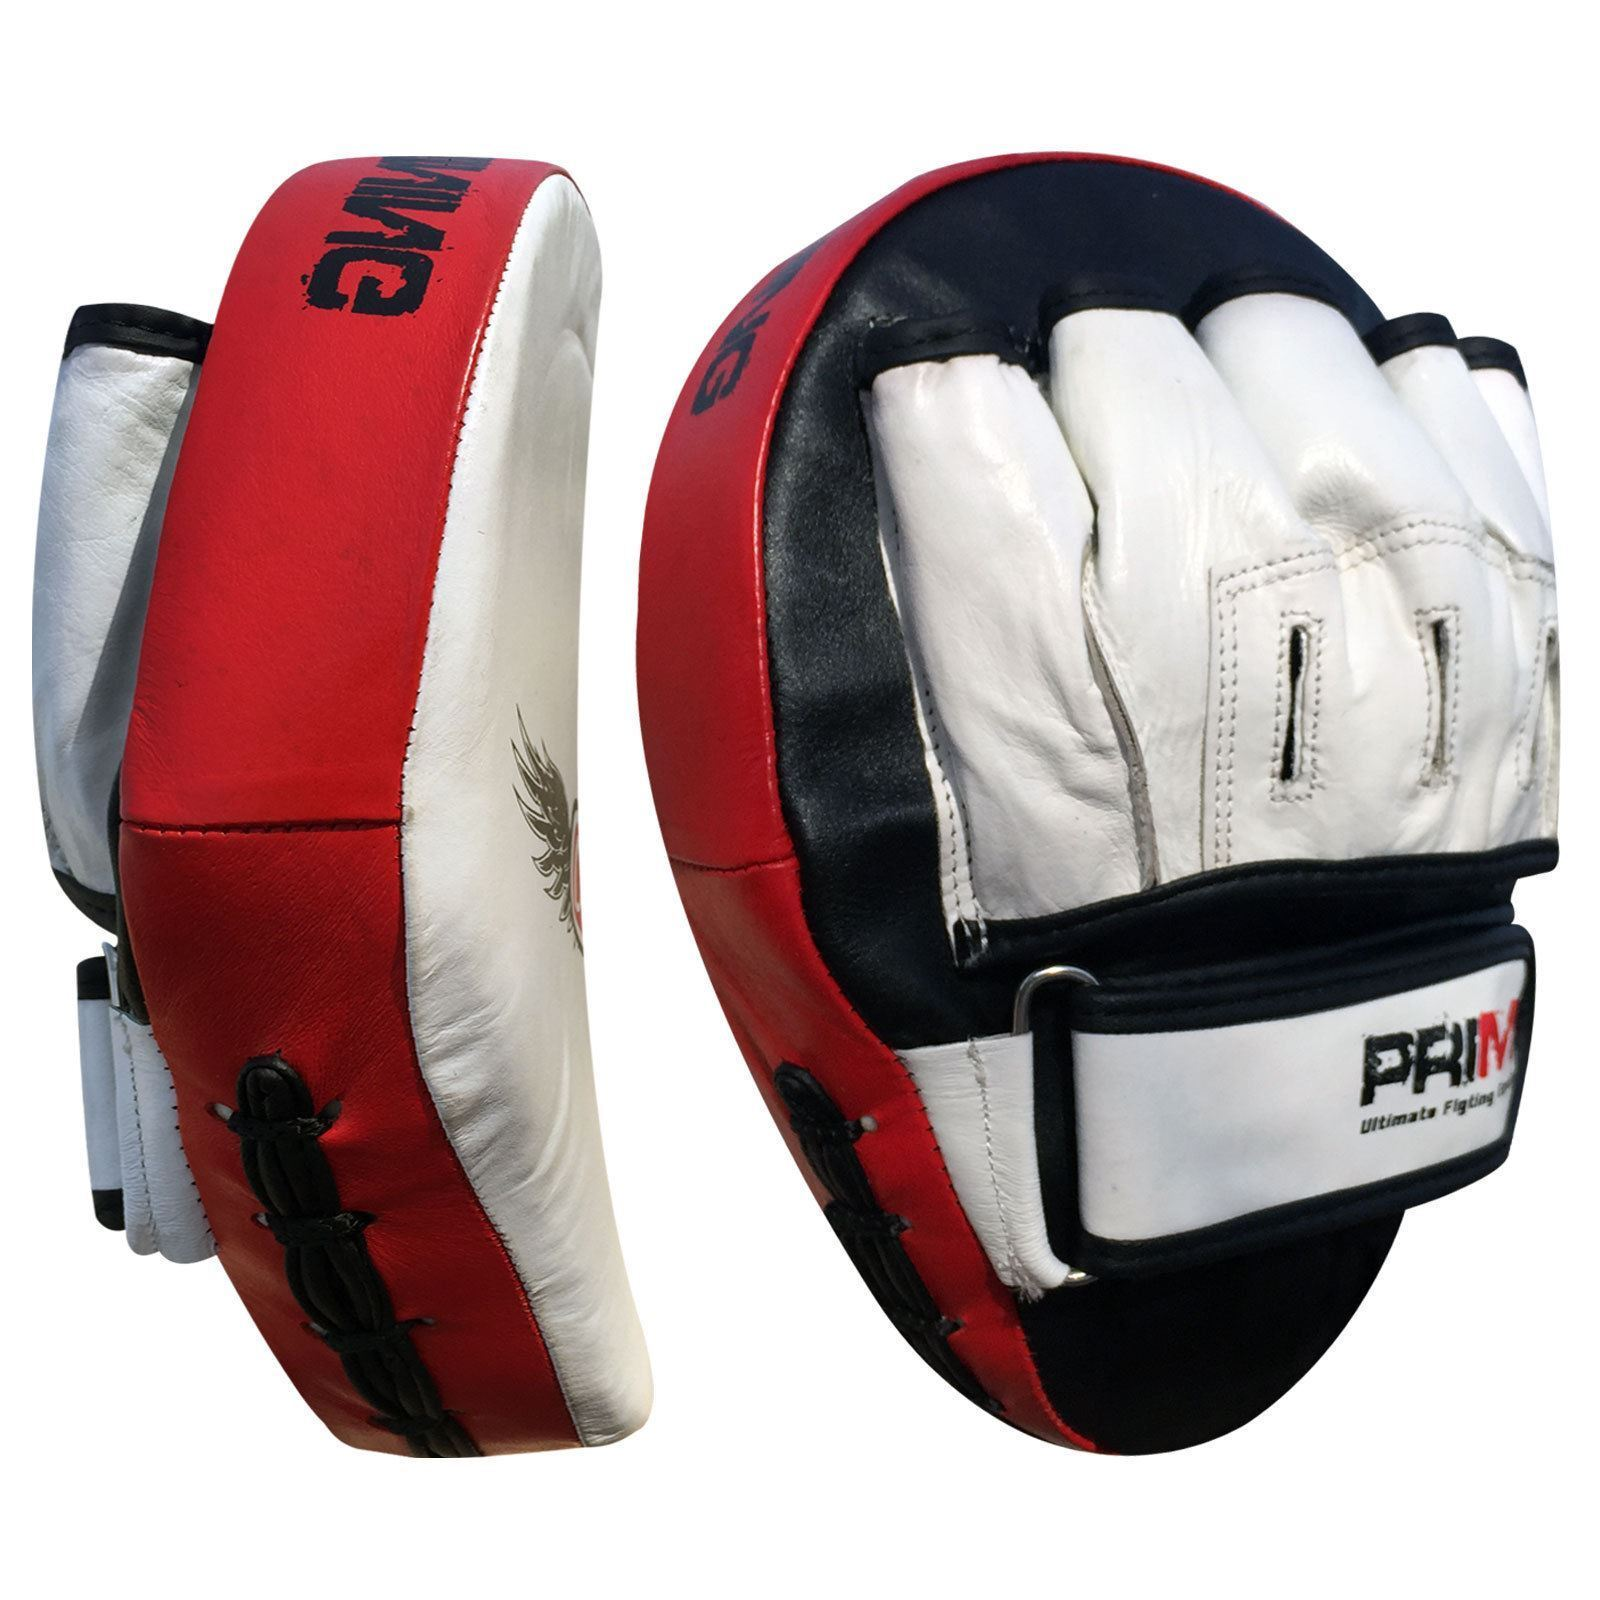 Kids boxing set 3 3 3 Pcs Uniform + Boxing Gloves 1010 + Focus pad 1105 (SET-16) 09590f